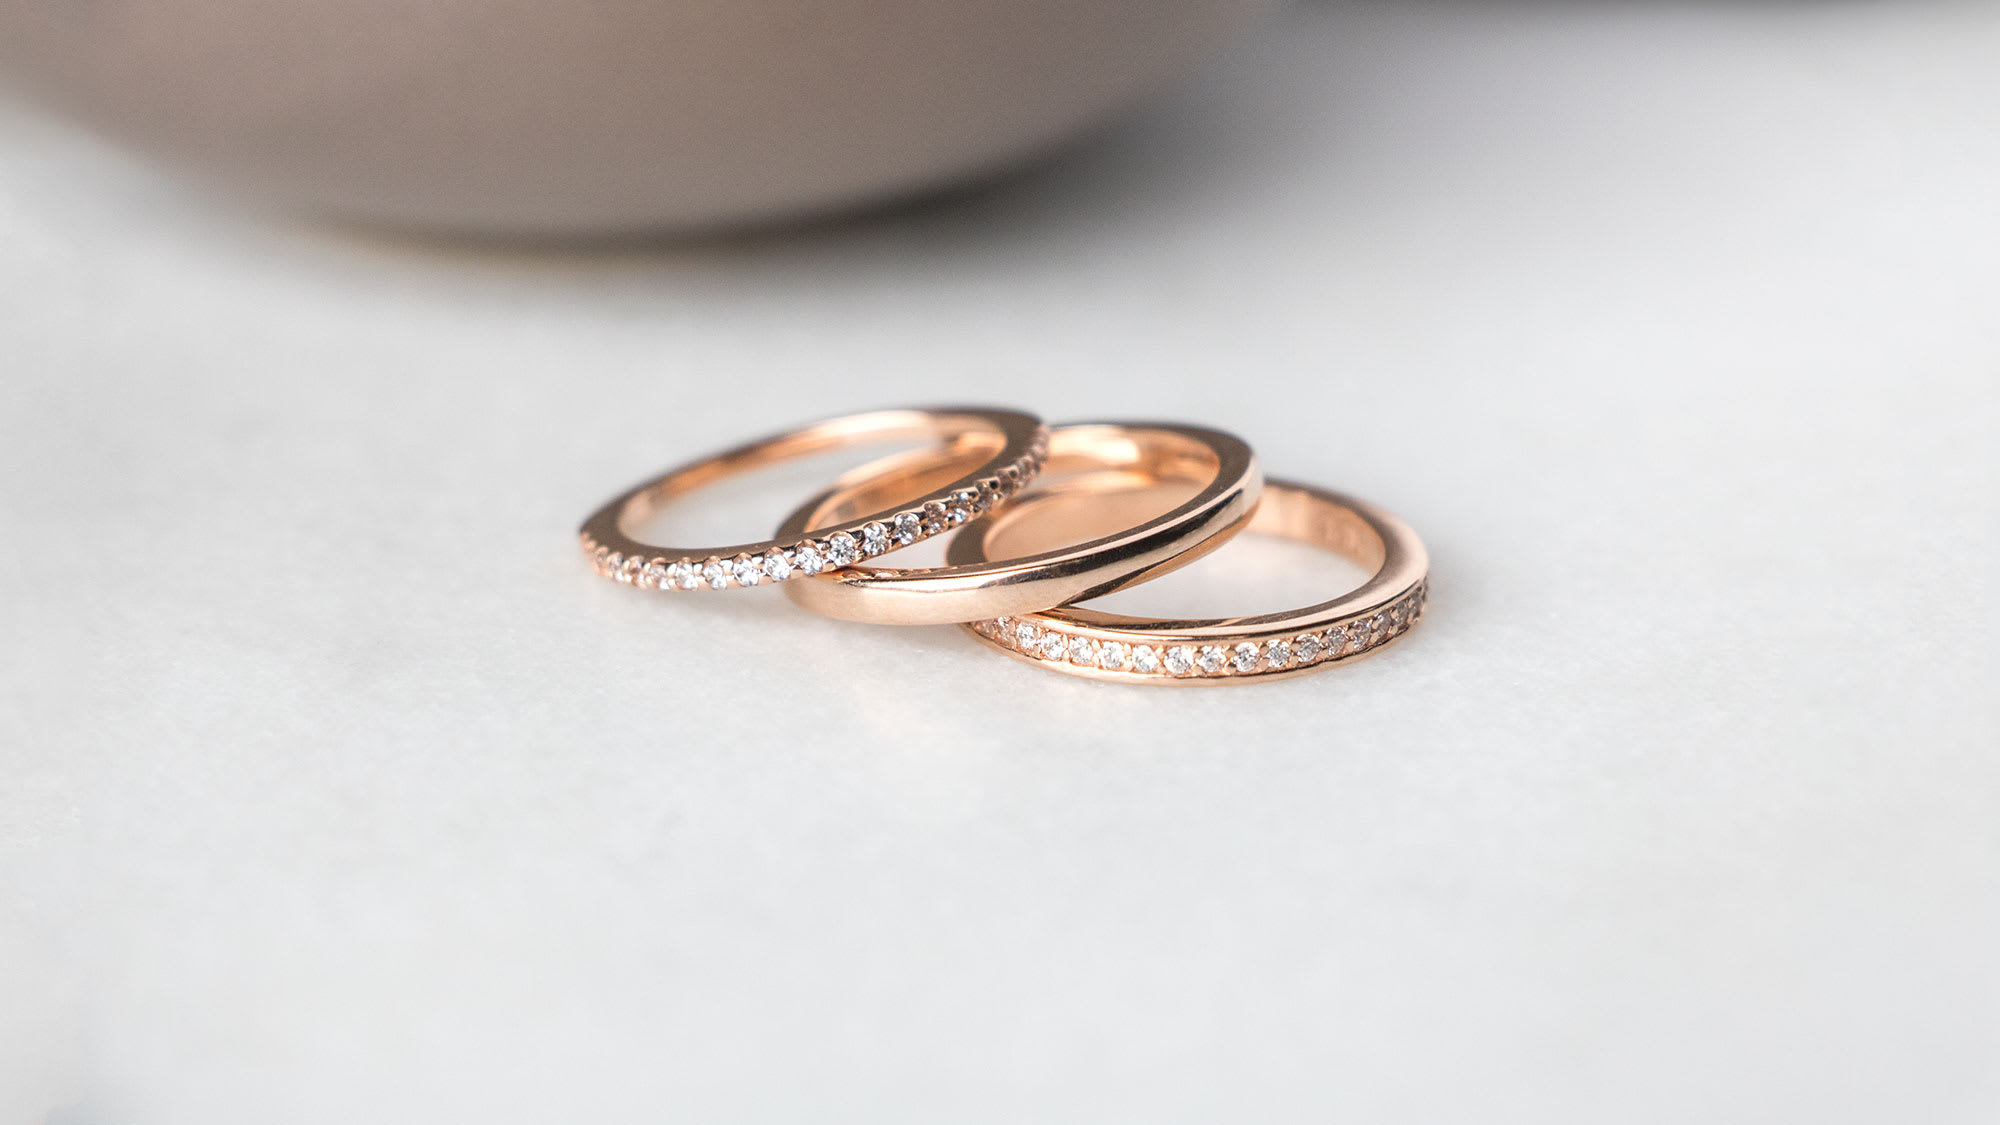 A rose gold ring stack featuring three Diamond Nexus bands.